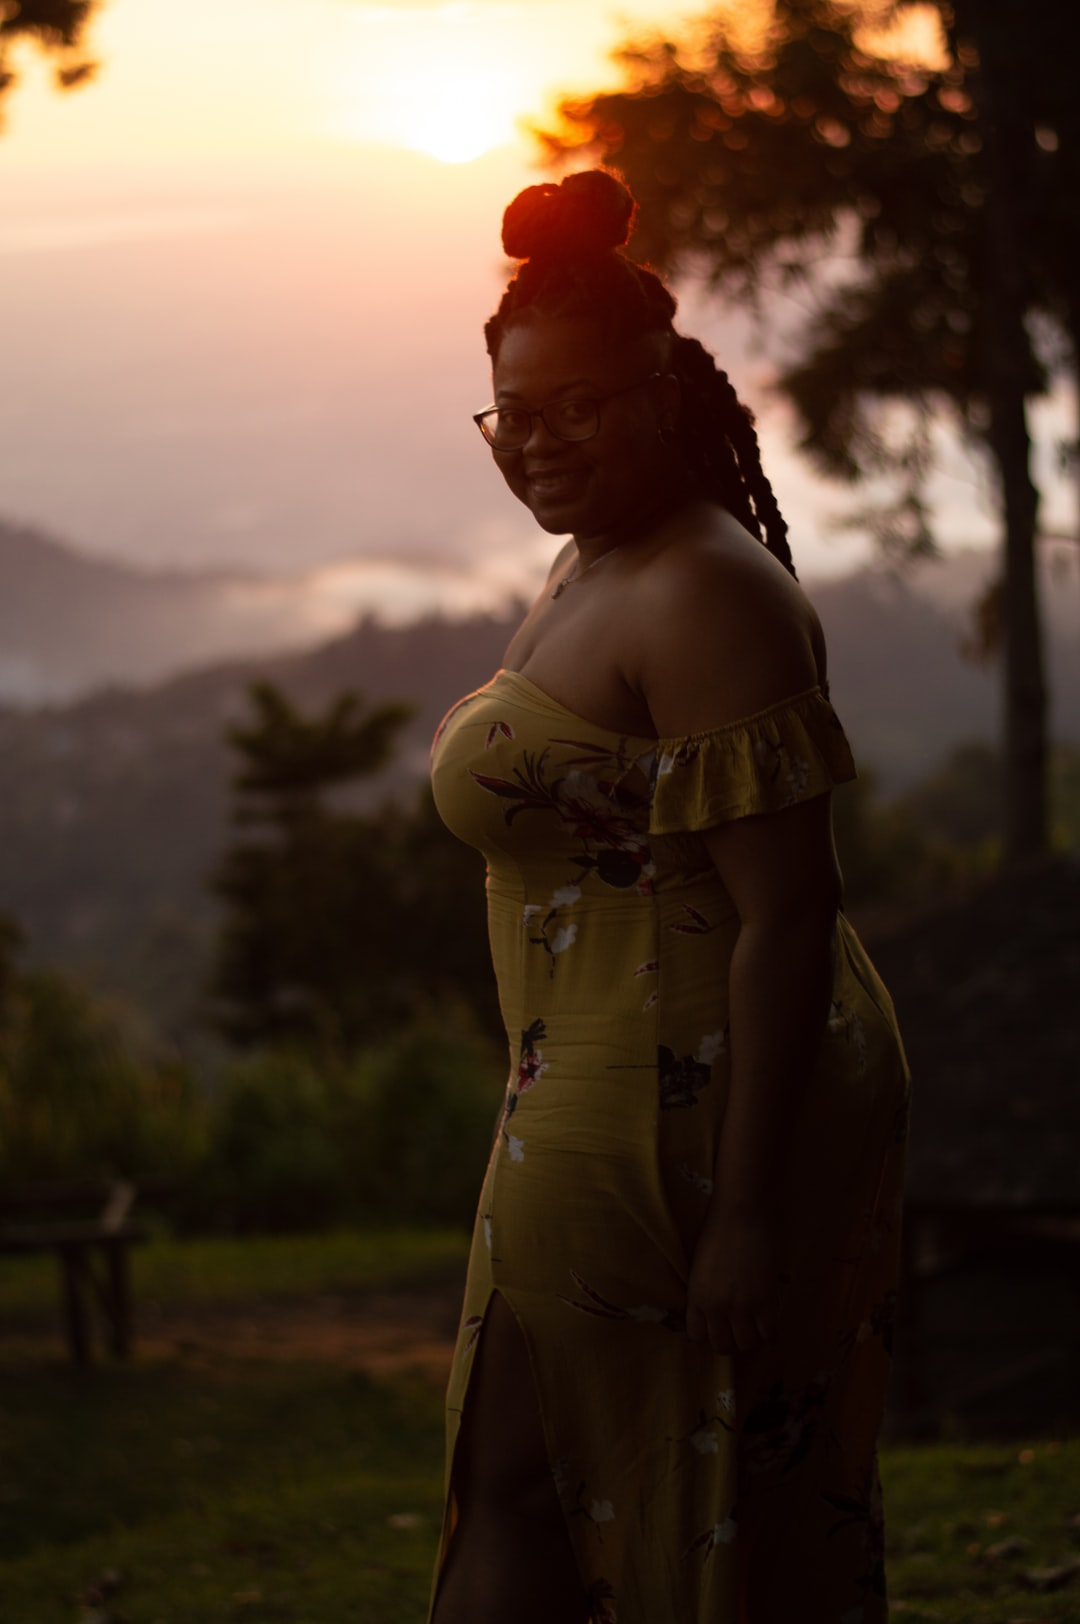 Young millennial women of color (black woman) @shanicejdouglas wearing a yellow floral dress with natural hair, and glasses smiling during sunset in Blue Mountains, Kingston, Jamaica.